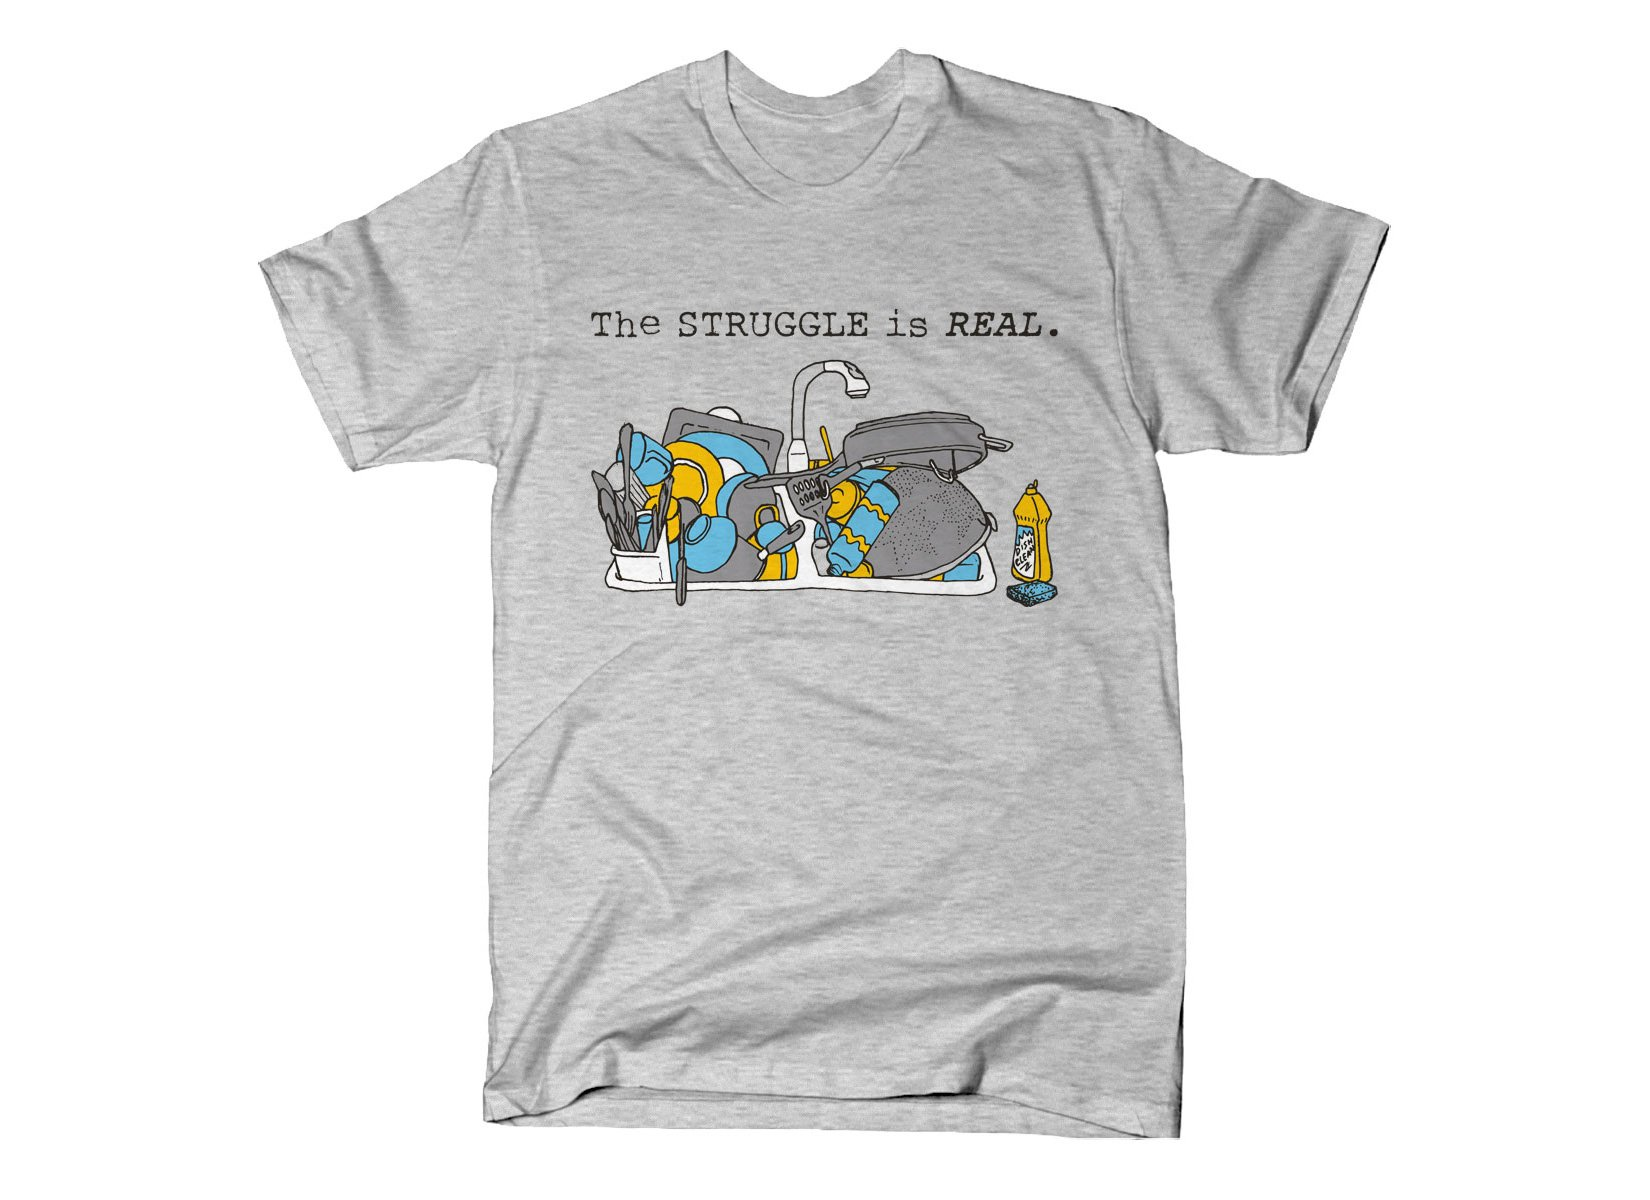 The Struggle Is Real on Mens T-Shirt